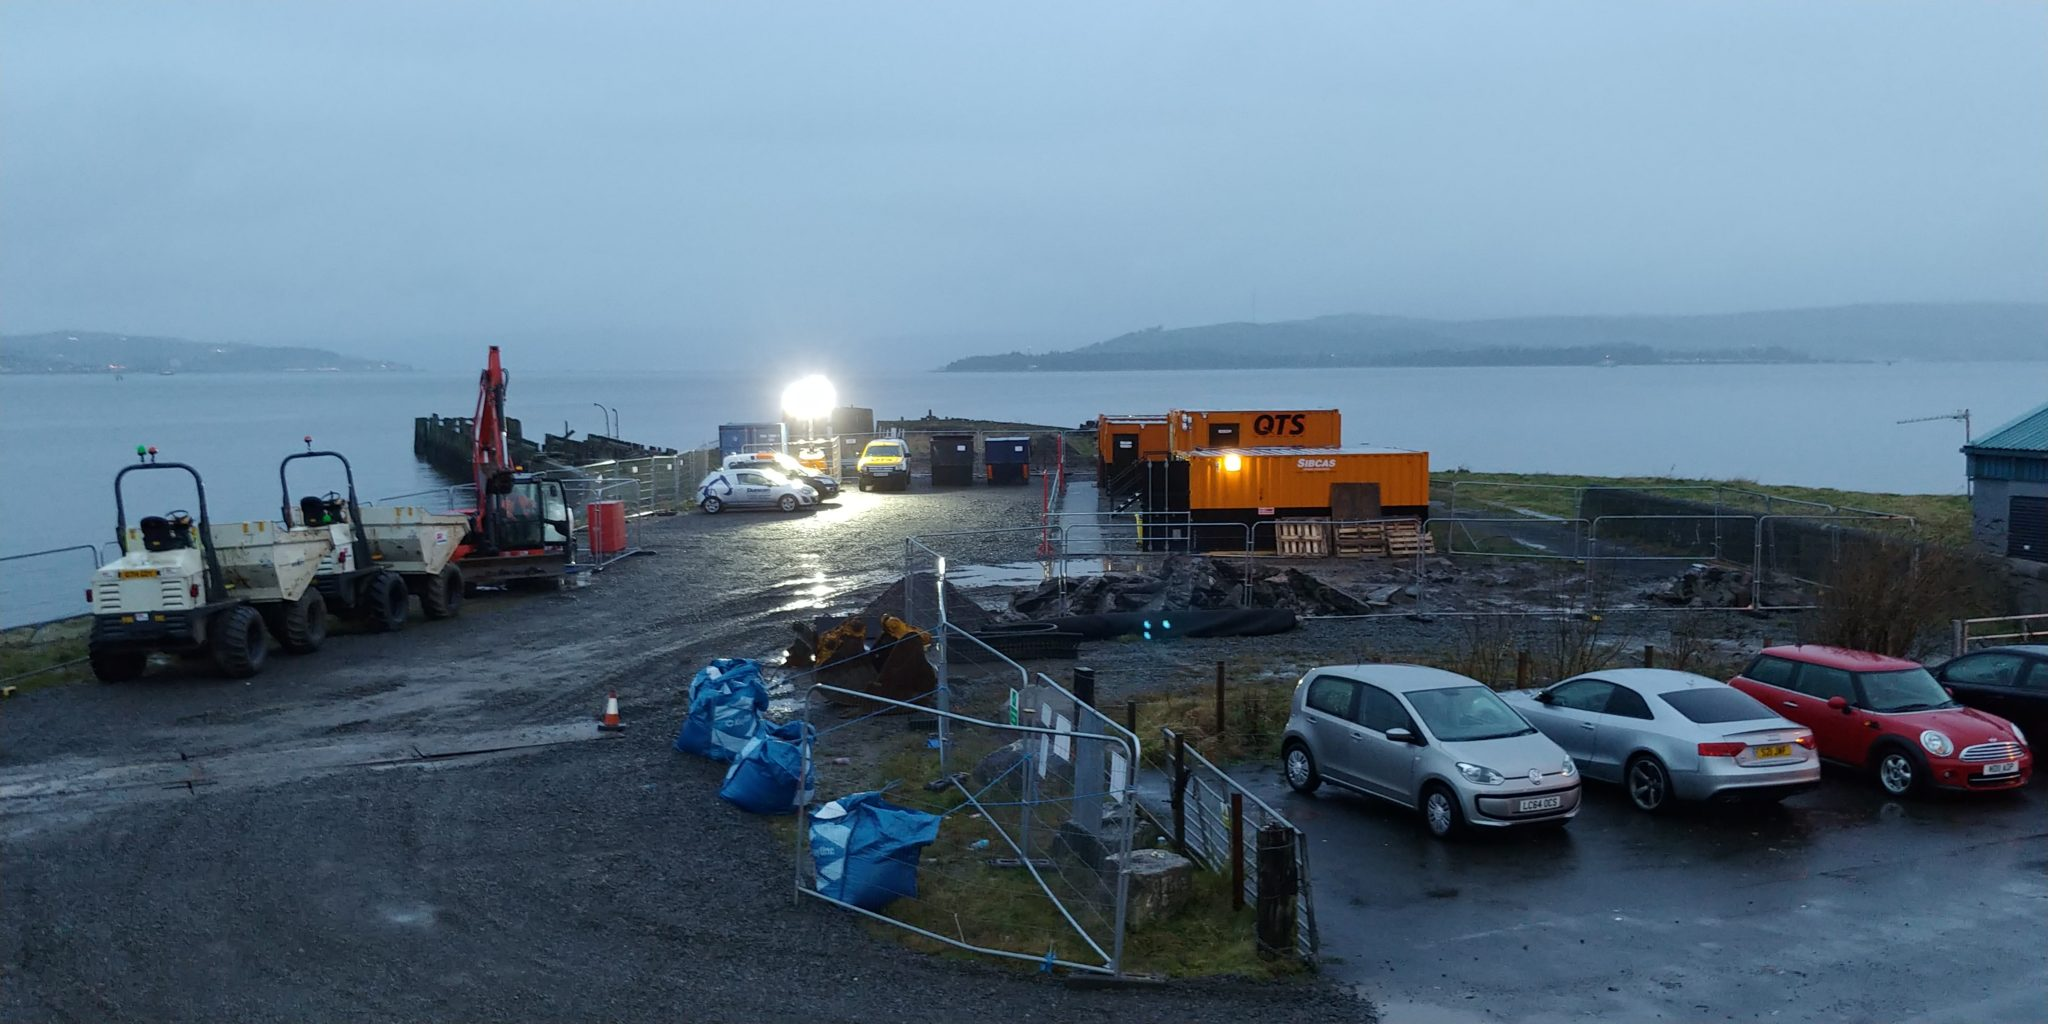 Construction works at Craigendoran Pier